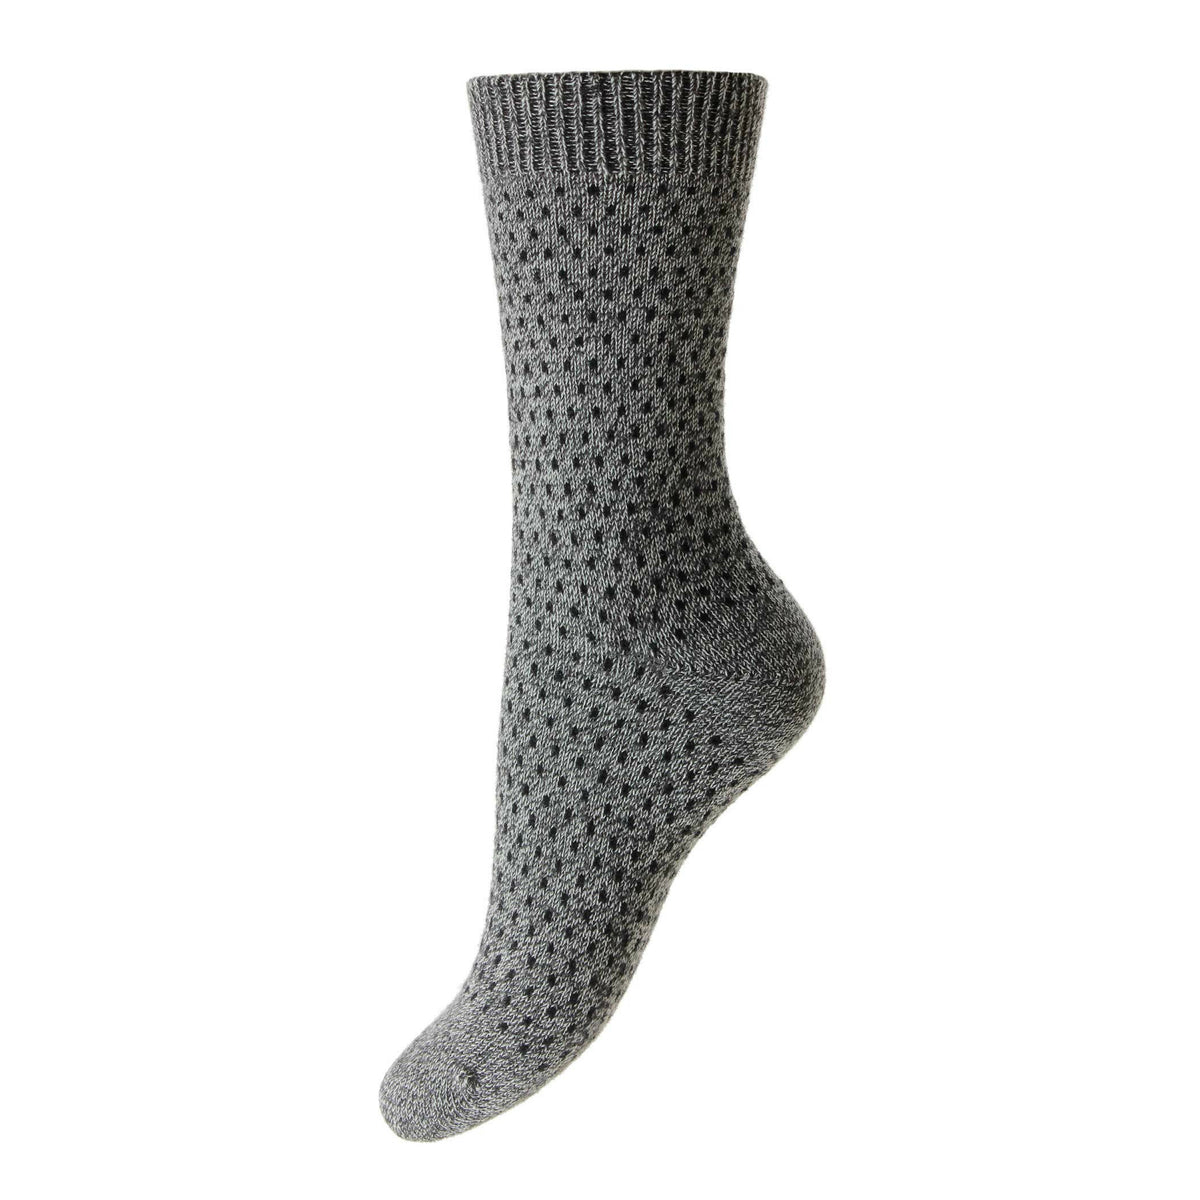 Pantherella - Ladies Cashmere Socks - W756 Dotty Socks